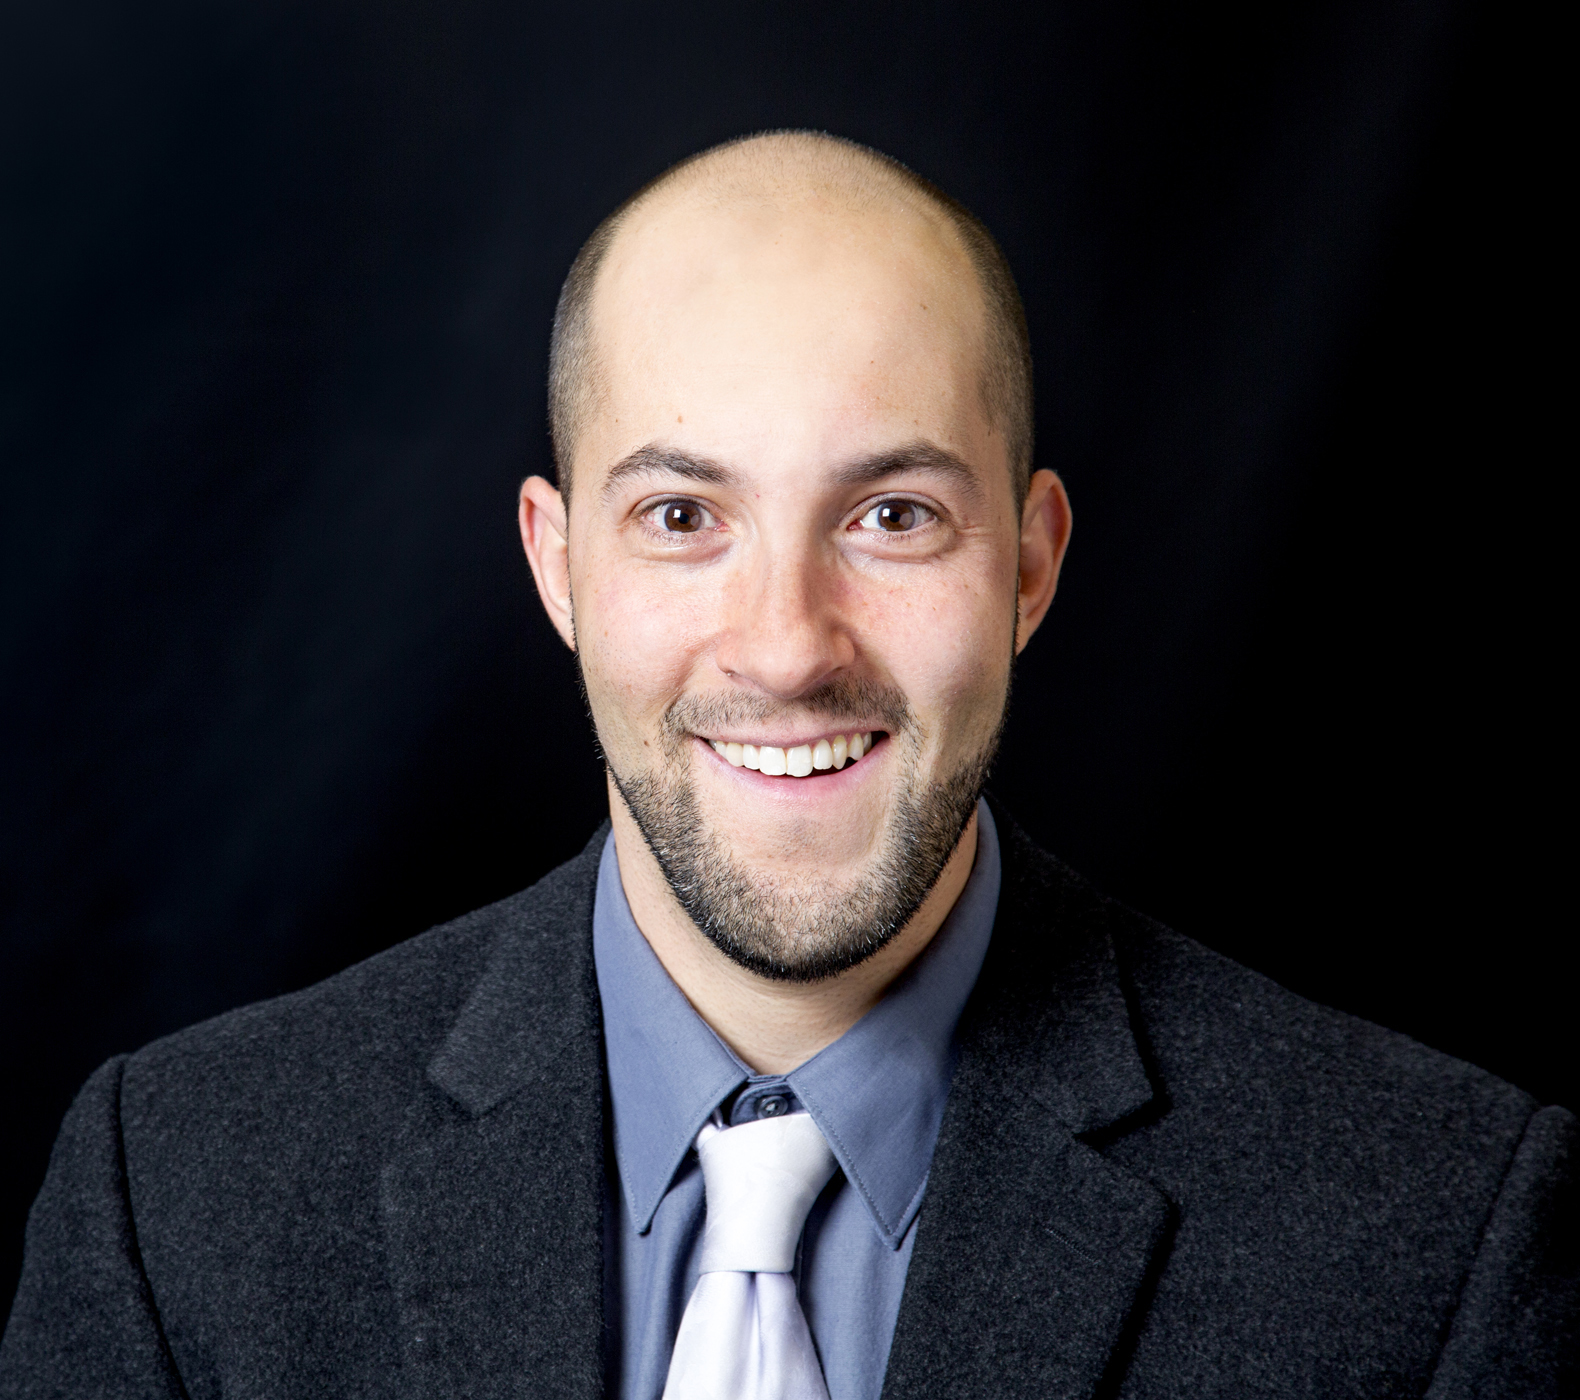 University of Utah researcher Eric Garland developed a new mindfulness-focused treatment for people with chronic pain that can effectively reduce pain and misuse of opioid painkillers.